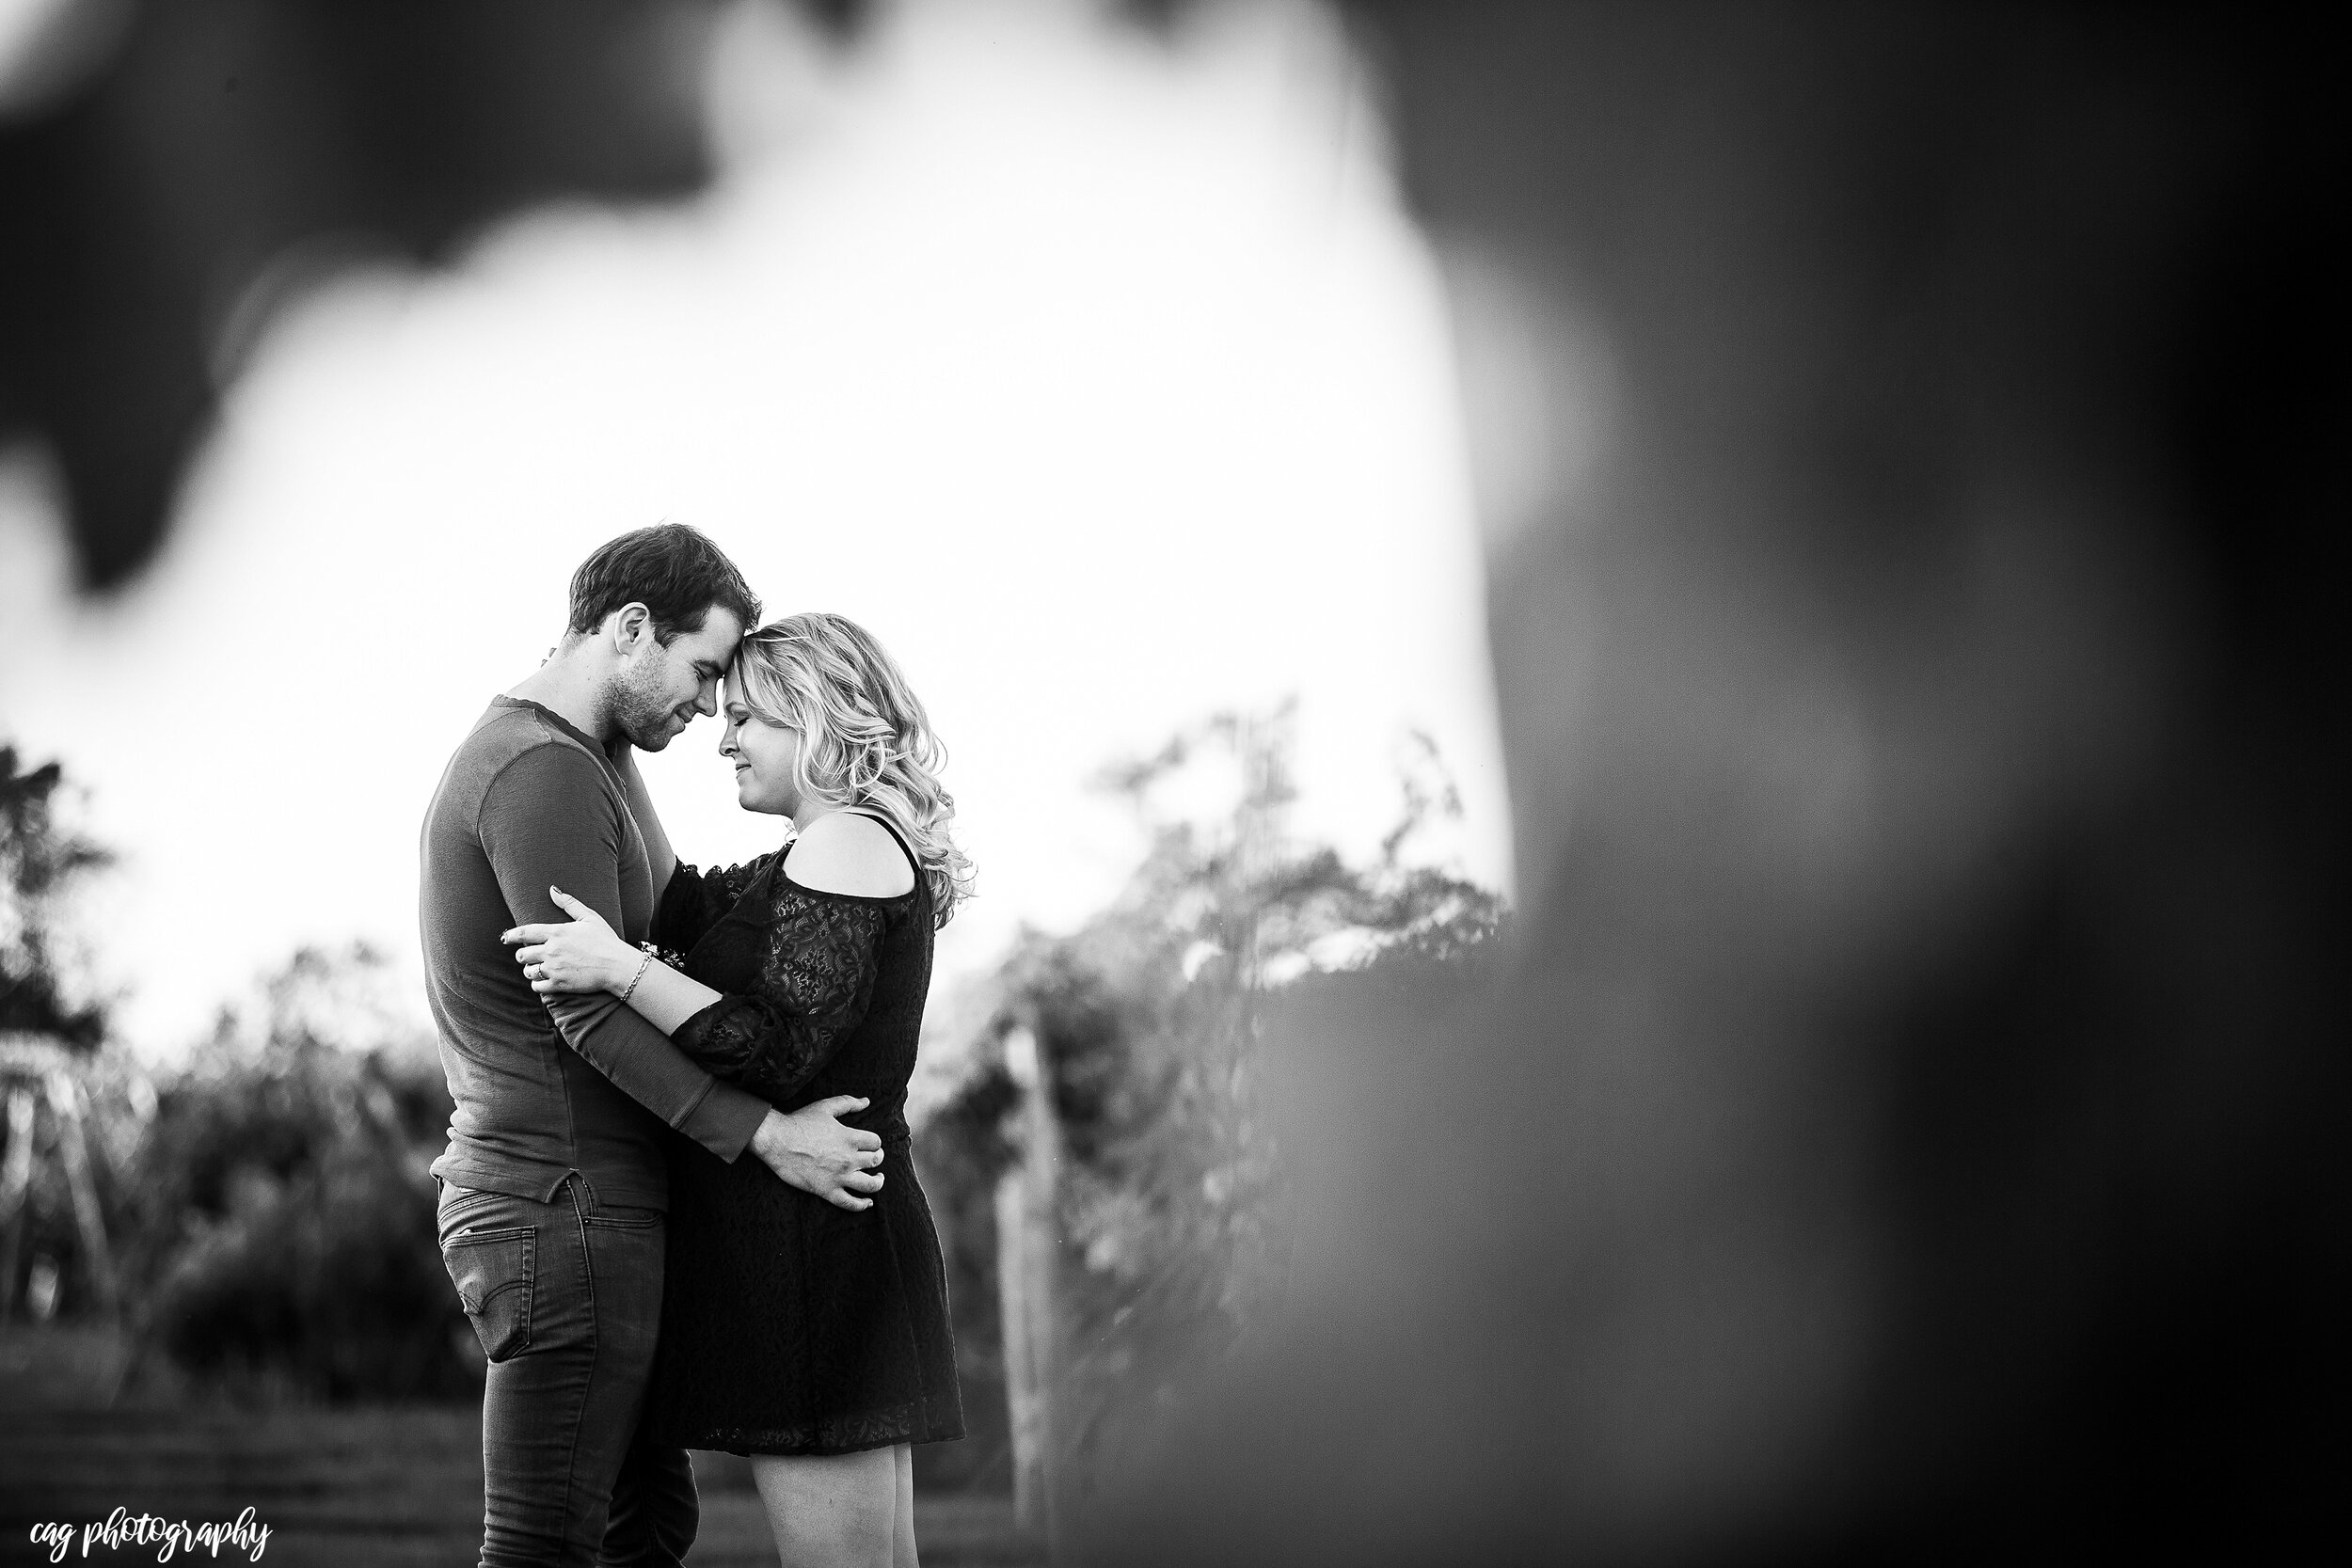 Nicole+Matt ENGAGED-59.jpg